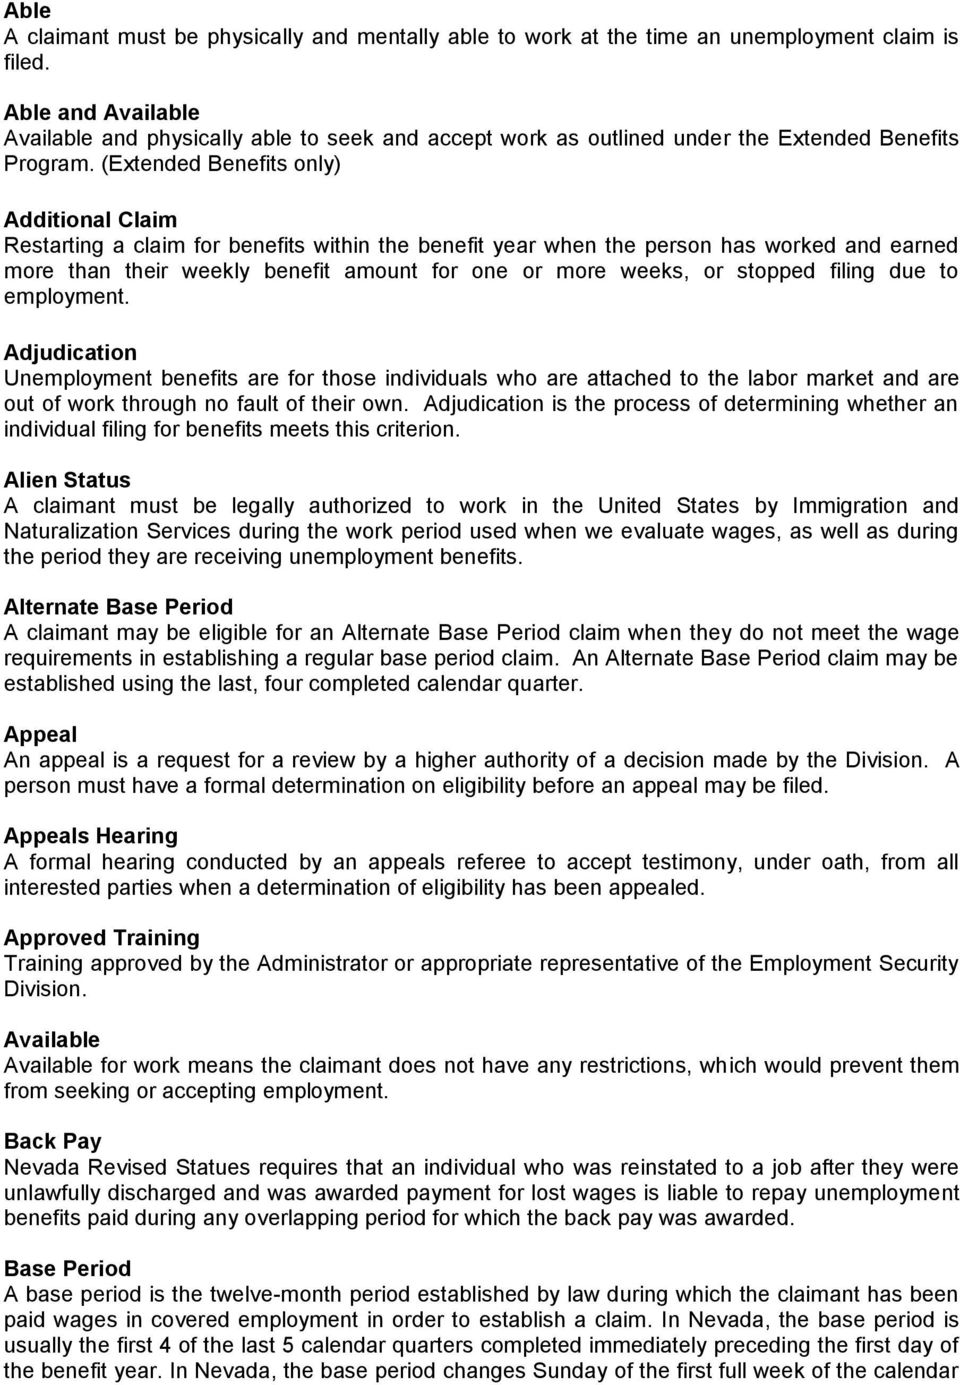 Glossary Of Unemployment Insurance Terms Pdf